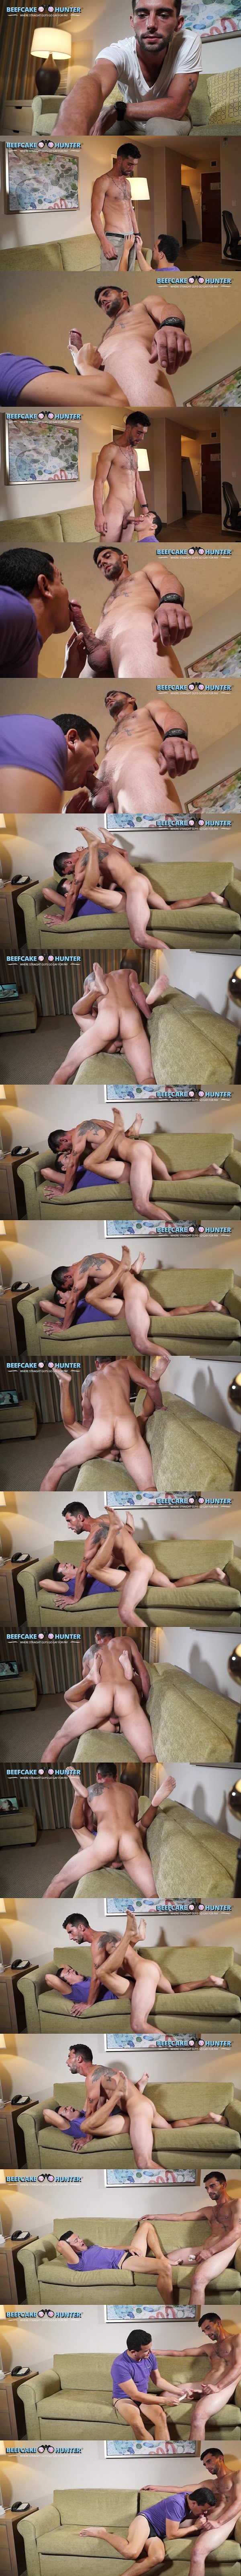 Hung, masculine straight construction worker Christian fucks Victor in missionary style until he cums at Beefcakehunter 02